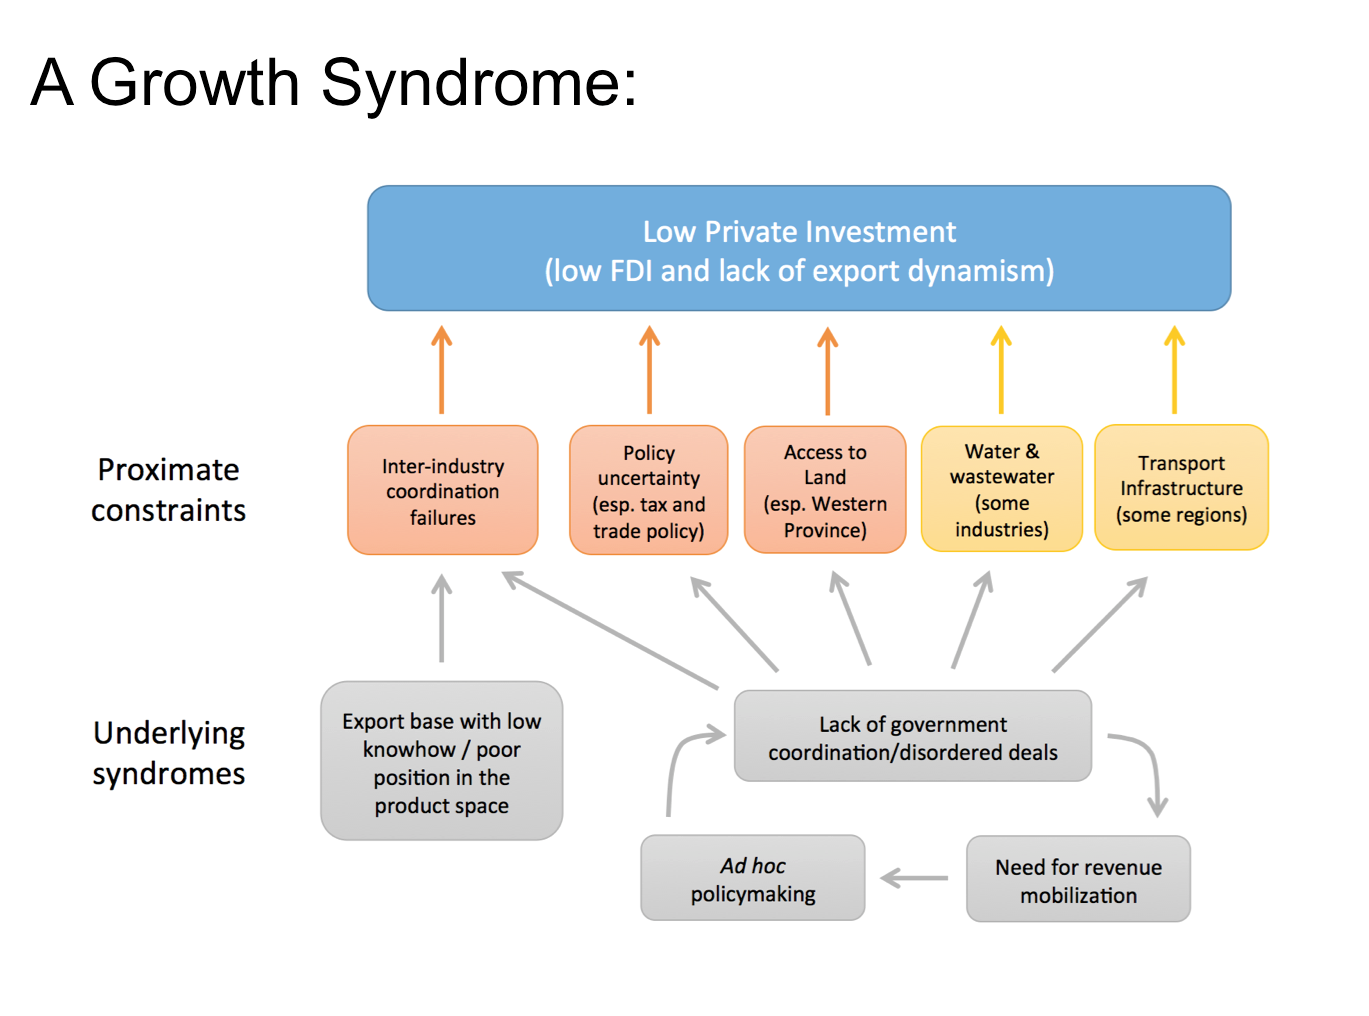 Sri Lanka Growth Syndrome